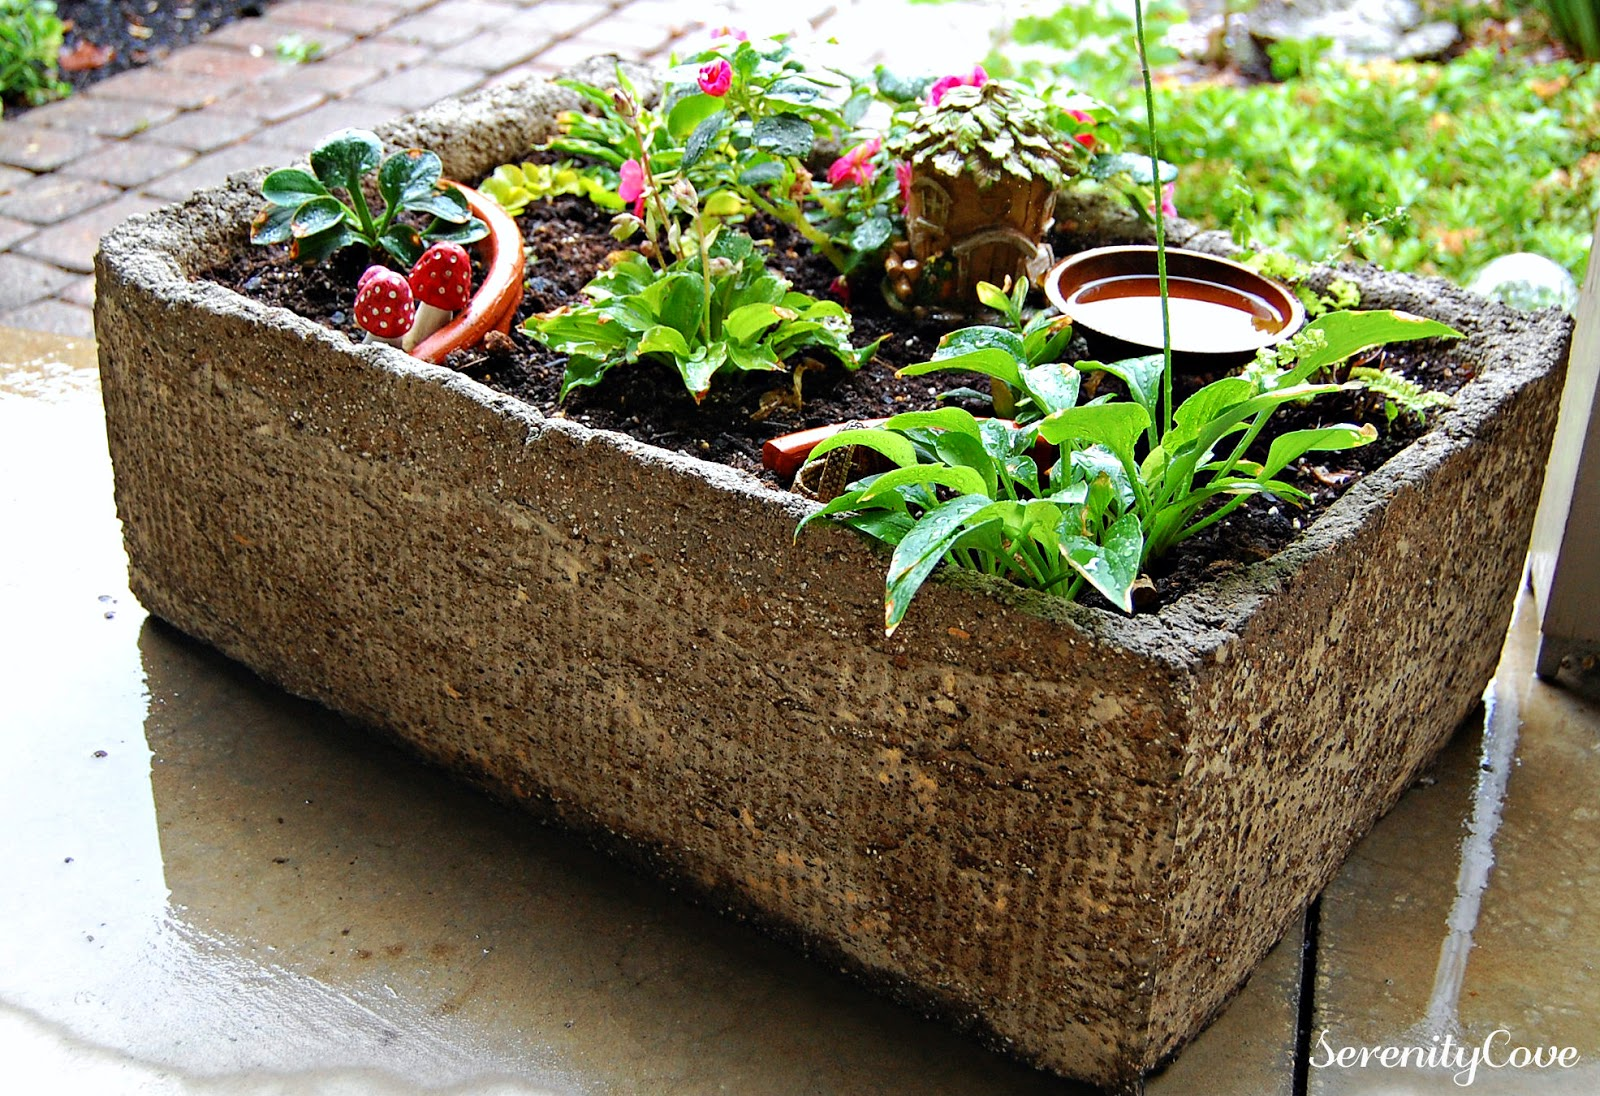 Mini Concrete Planters : Serenity cove a hypertufa planter for mini hostas